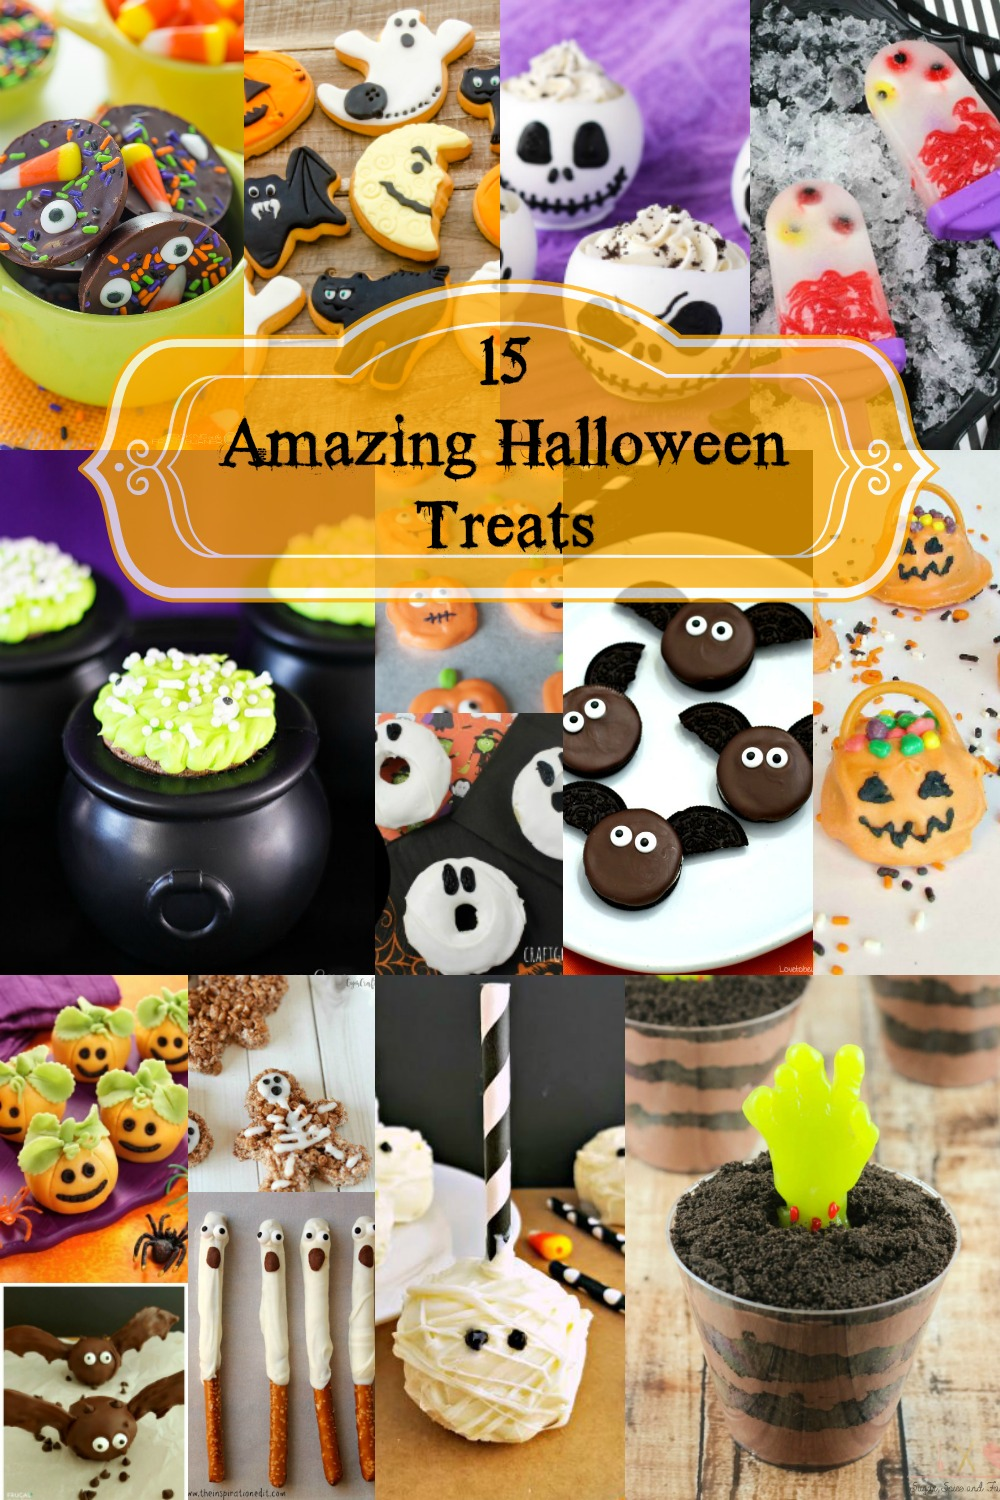 I have gathered 15 amazing Halloween treats that are sure to be a hit at your next Halloween party, they are non spooky and kids will enjoy the sweet treat.